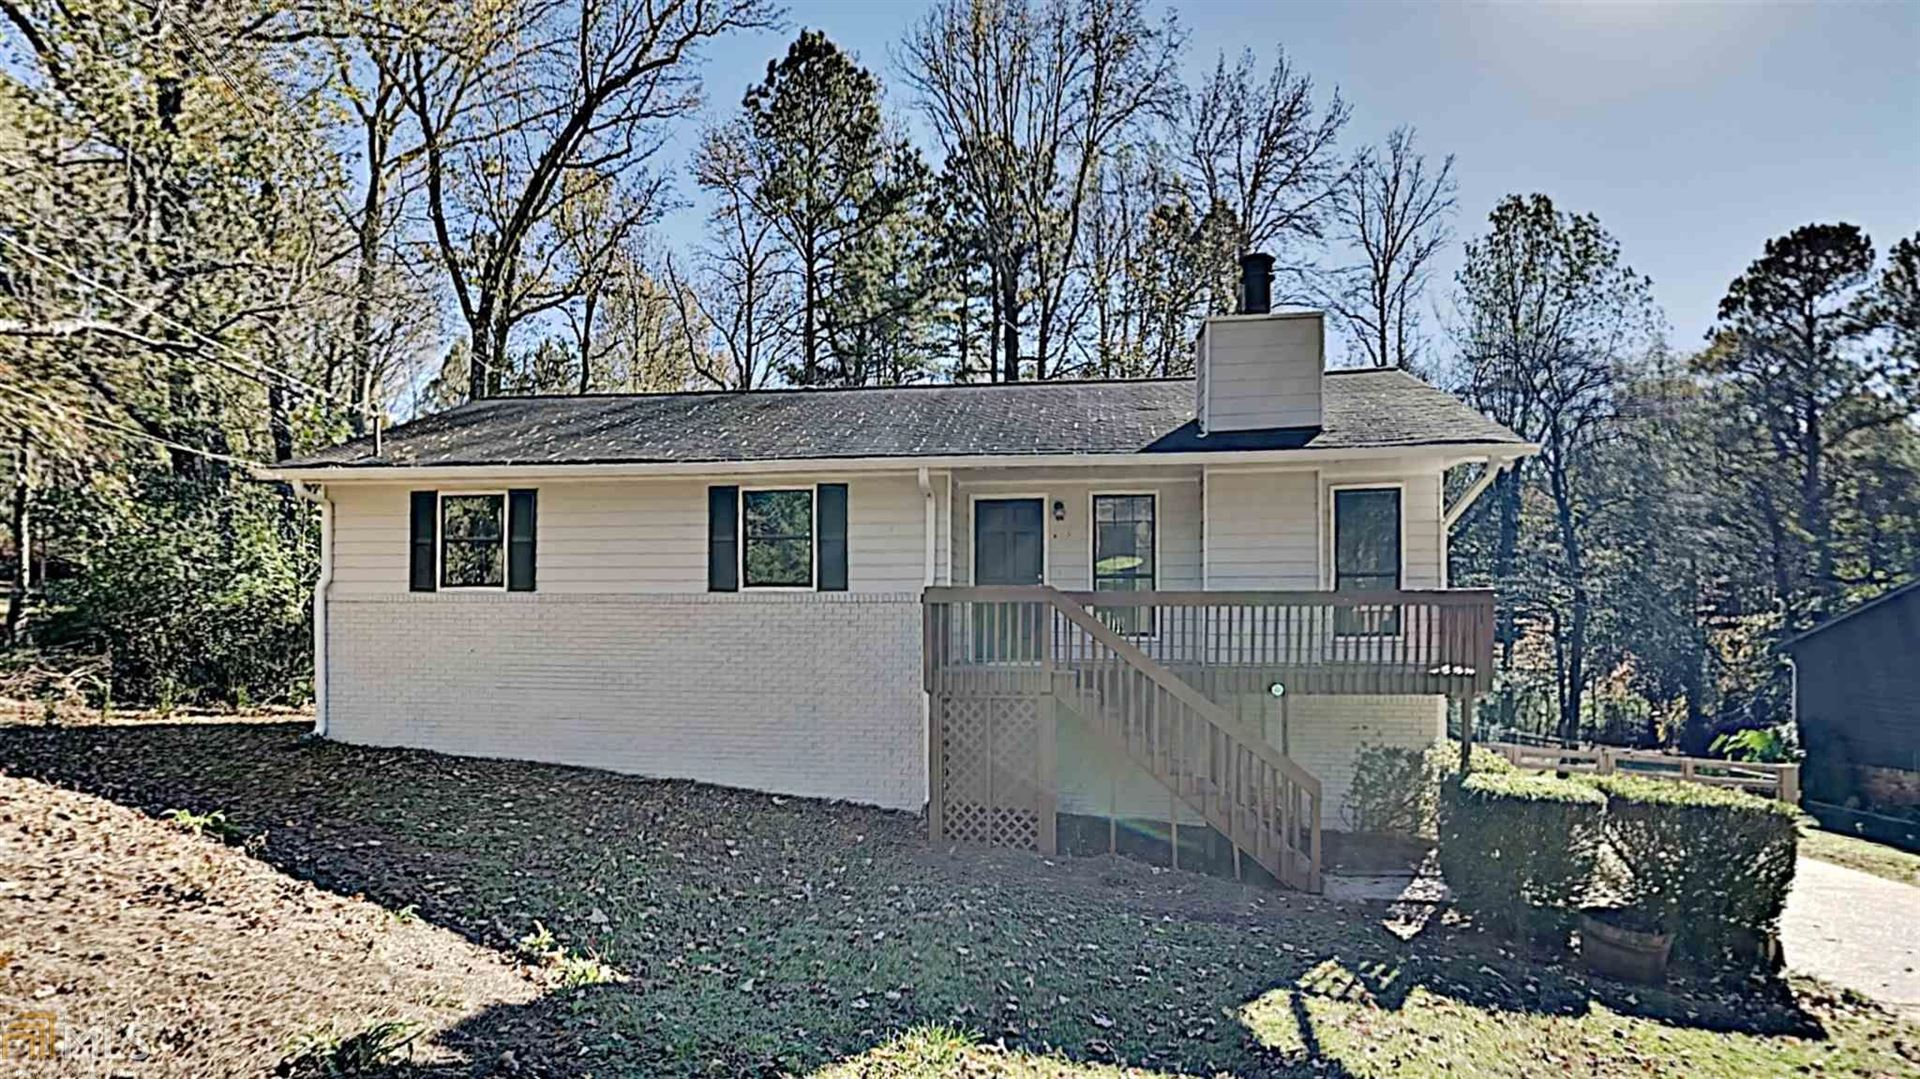 179 Cathie Dr, Dallas, GA 30132 - MLS#: 8891497